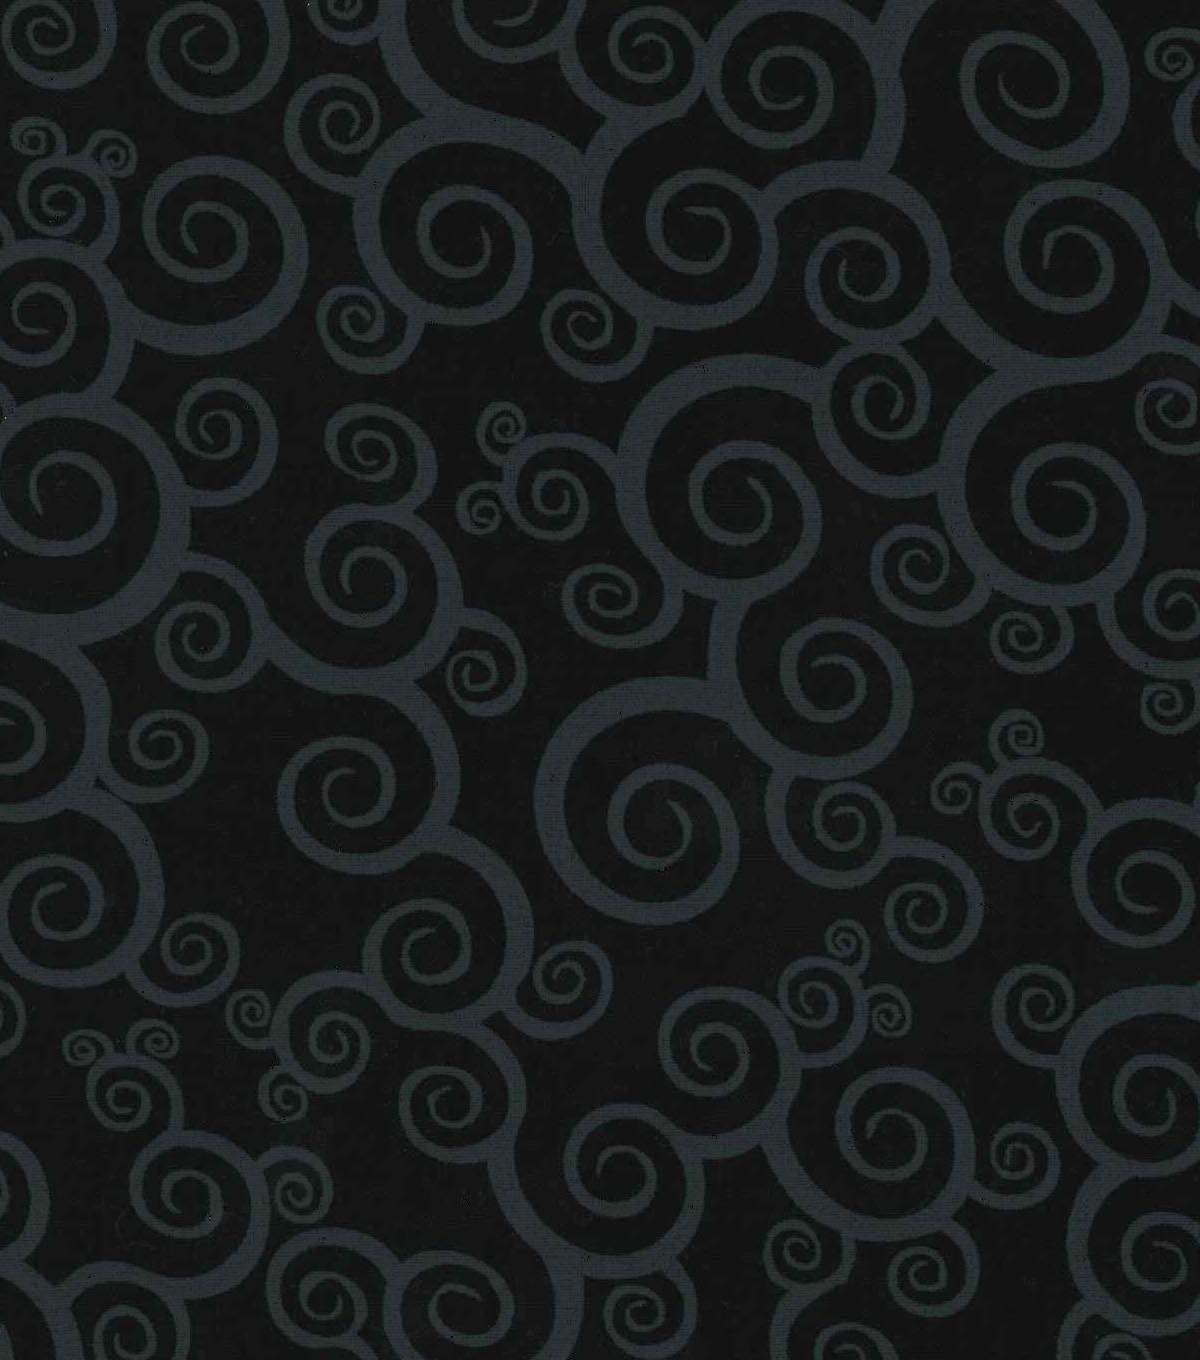 Keepsake Calico Cotton Fabric -Scroll on Black